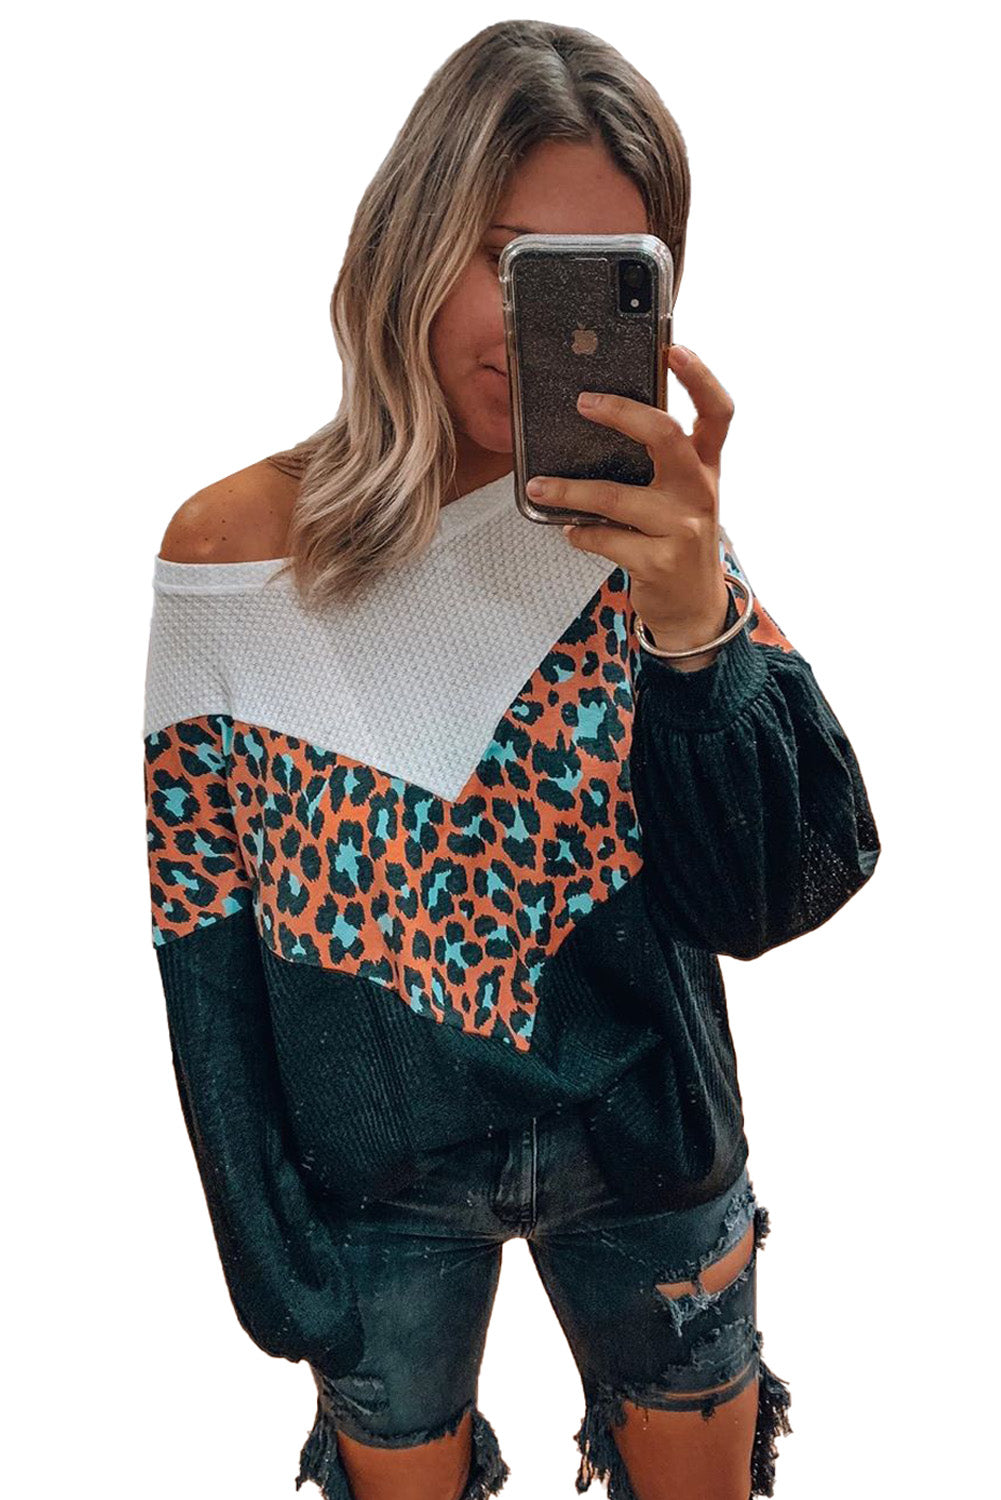 Black Colorblock Leopard Patchwork Knit Top Long Sleeve Tops Discount Designer Fashion Clothes Shoes Bags Women Men Kids Children Black Owned Business